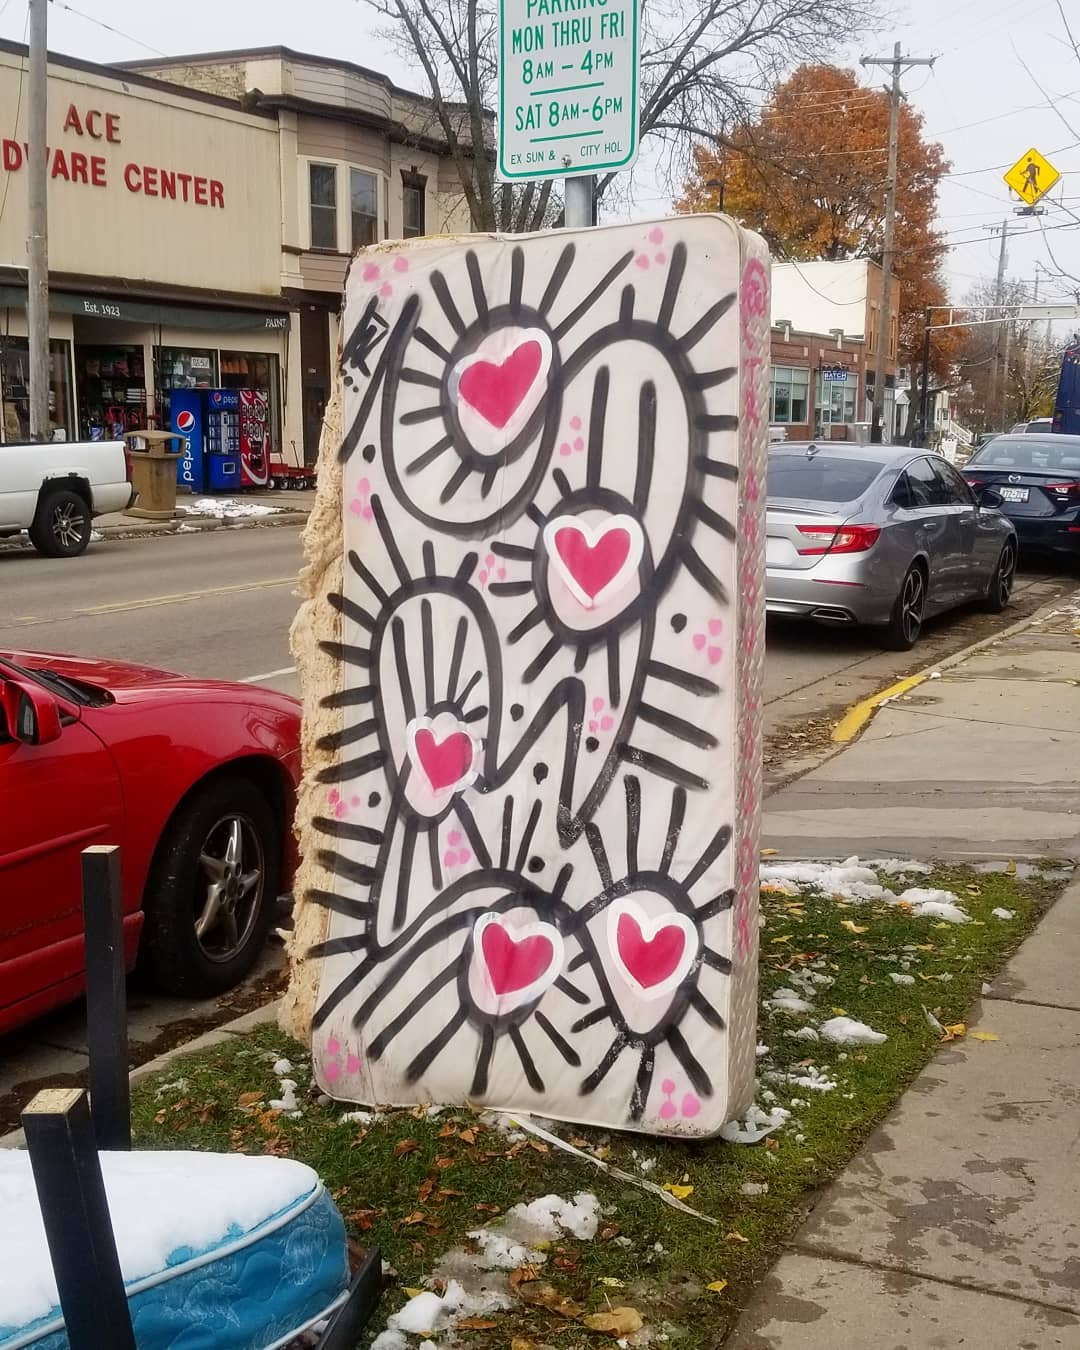 Image contains street art outdoors on box spring next to car